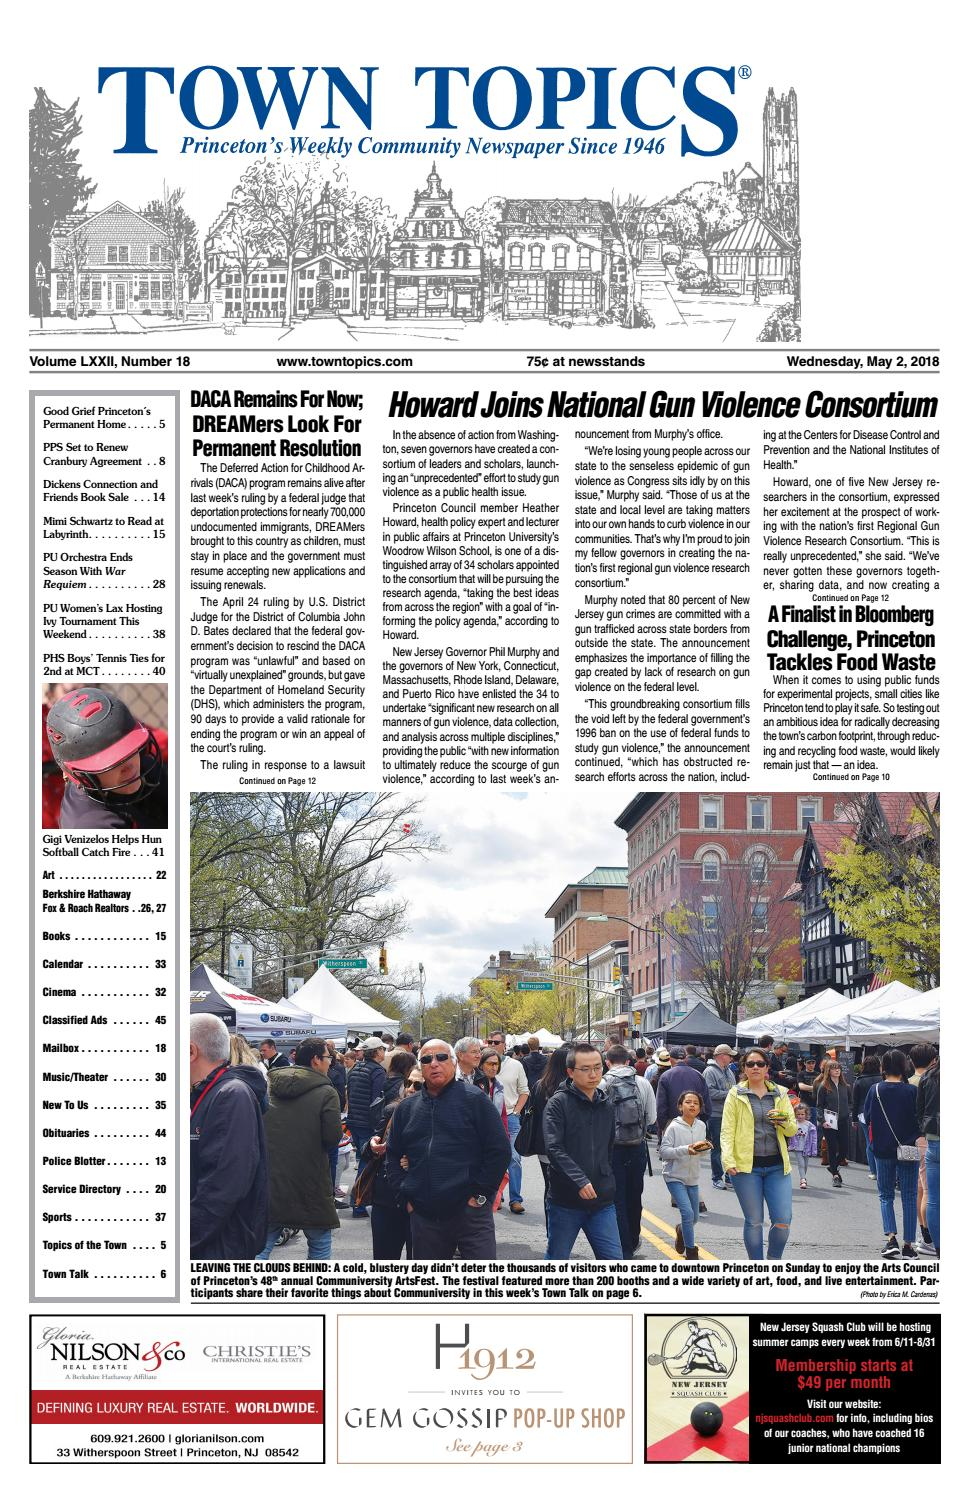 Town Topics Newspaper May 2, 2018 by Witherspoon Media Group - issuu